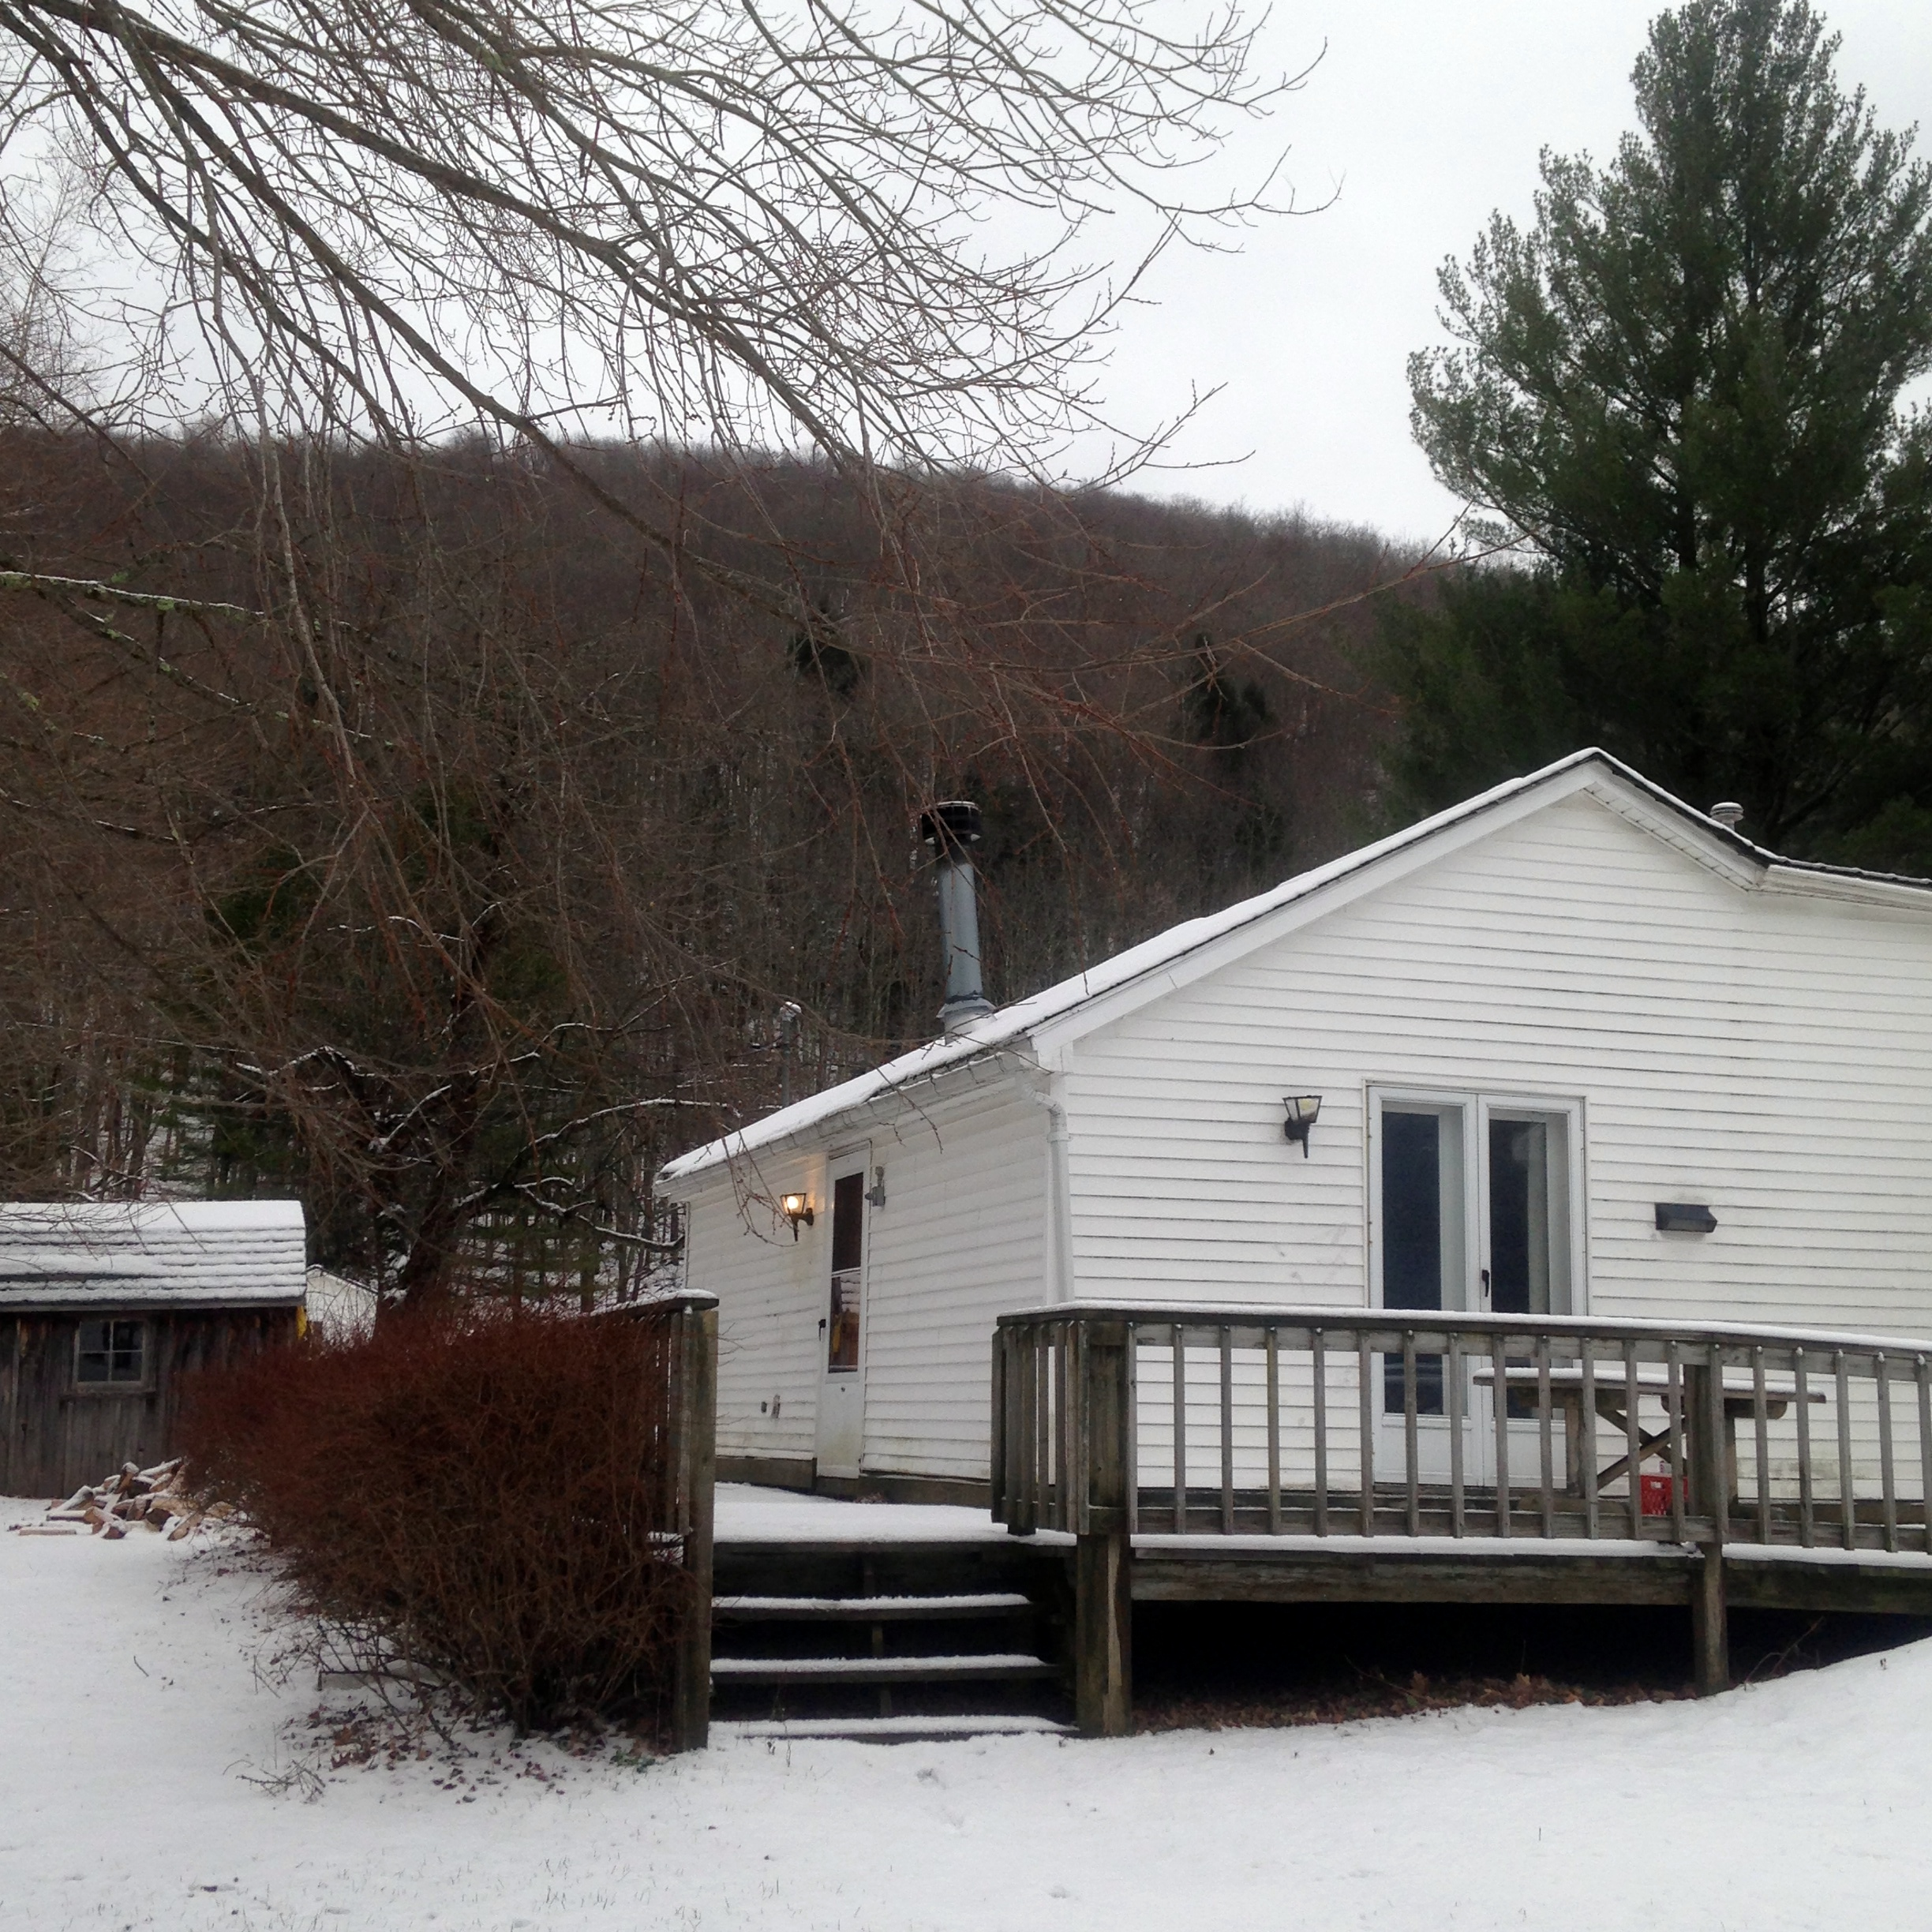 Condo Rental for Catskills skiing